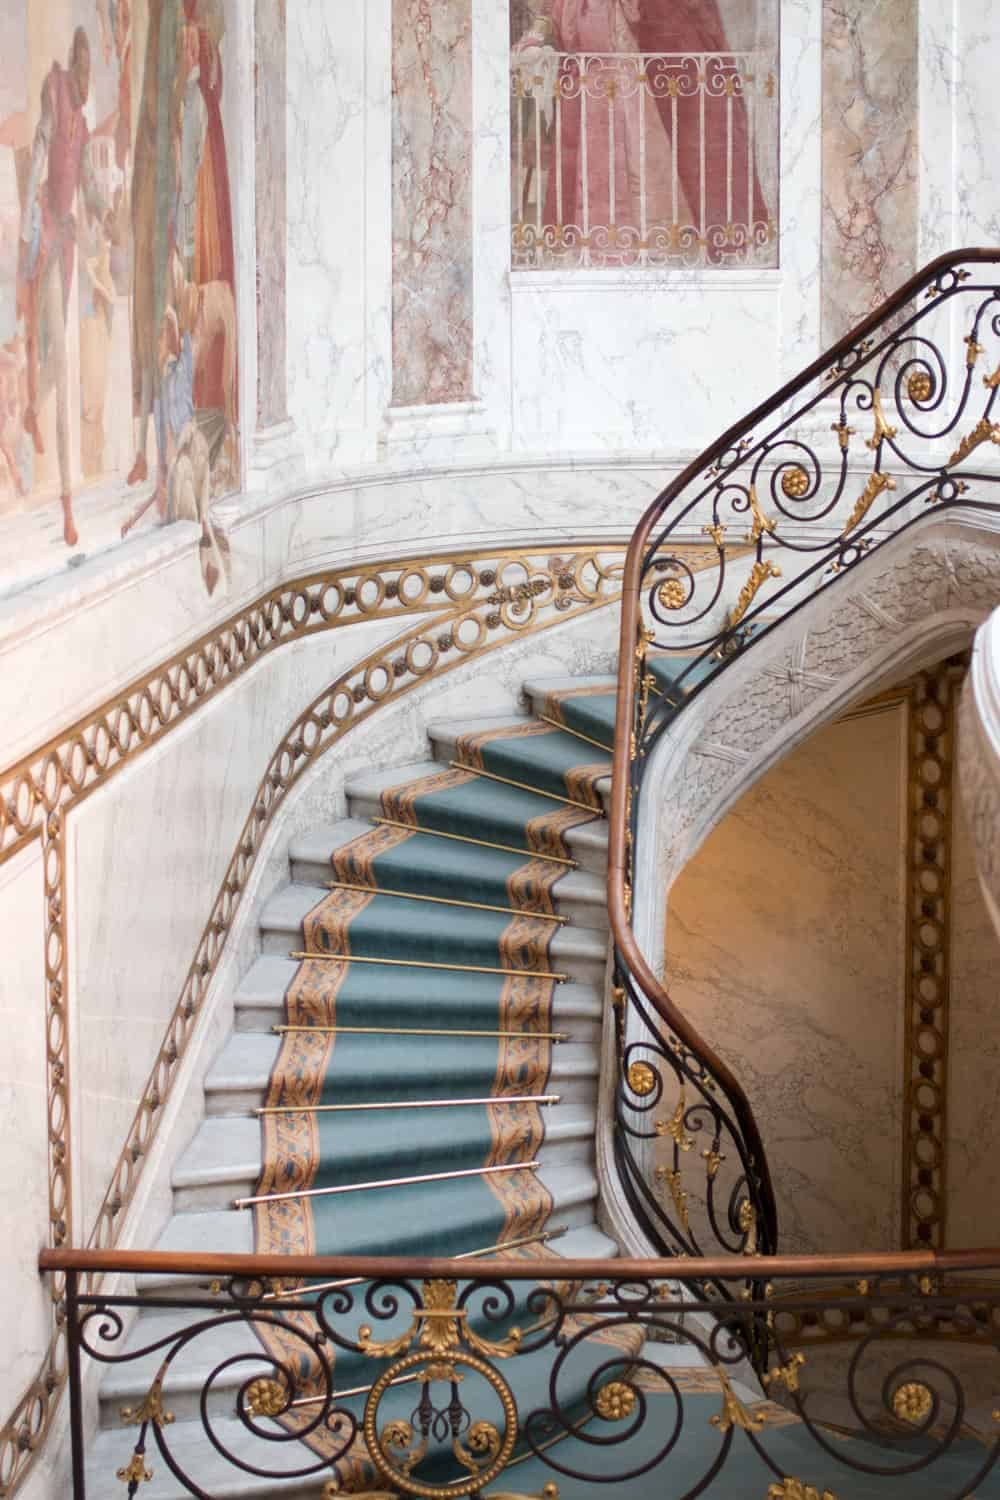 musee jacquemart andre paris france 5 museums to visit that aren't the louvre